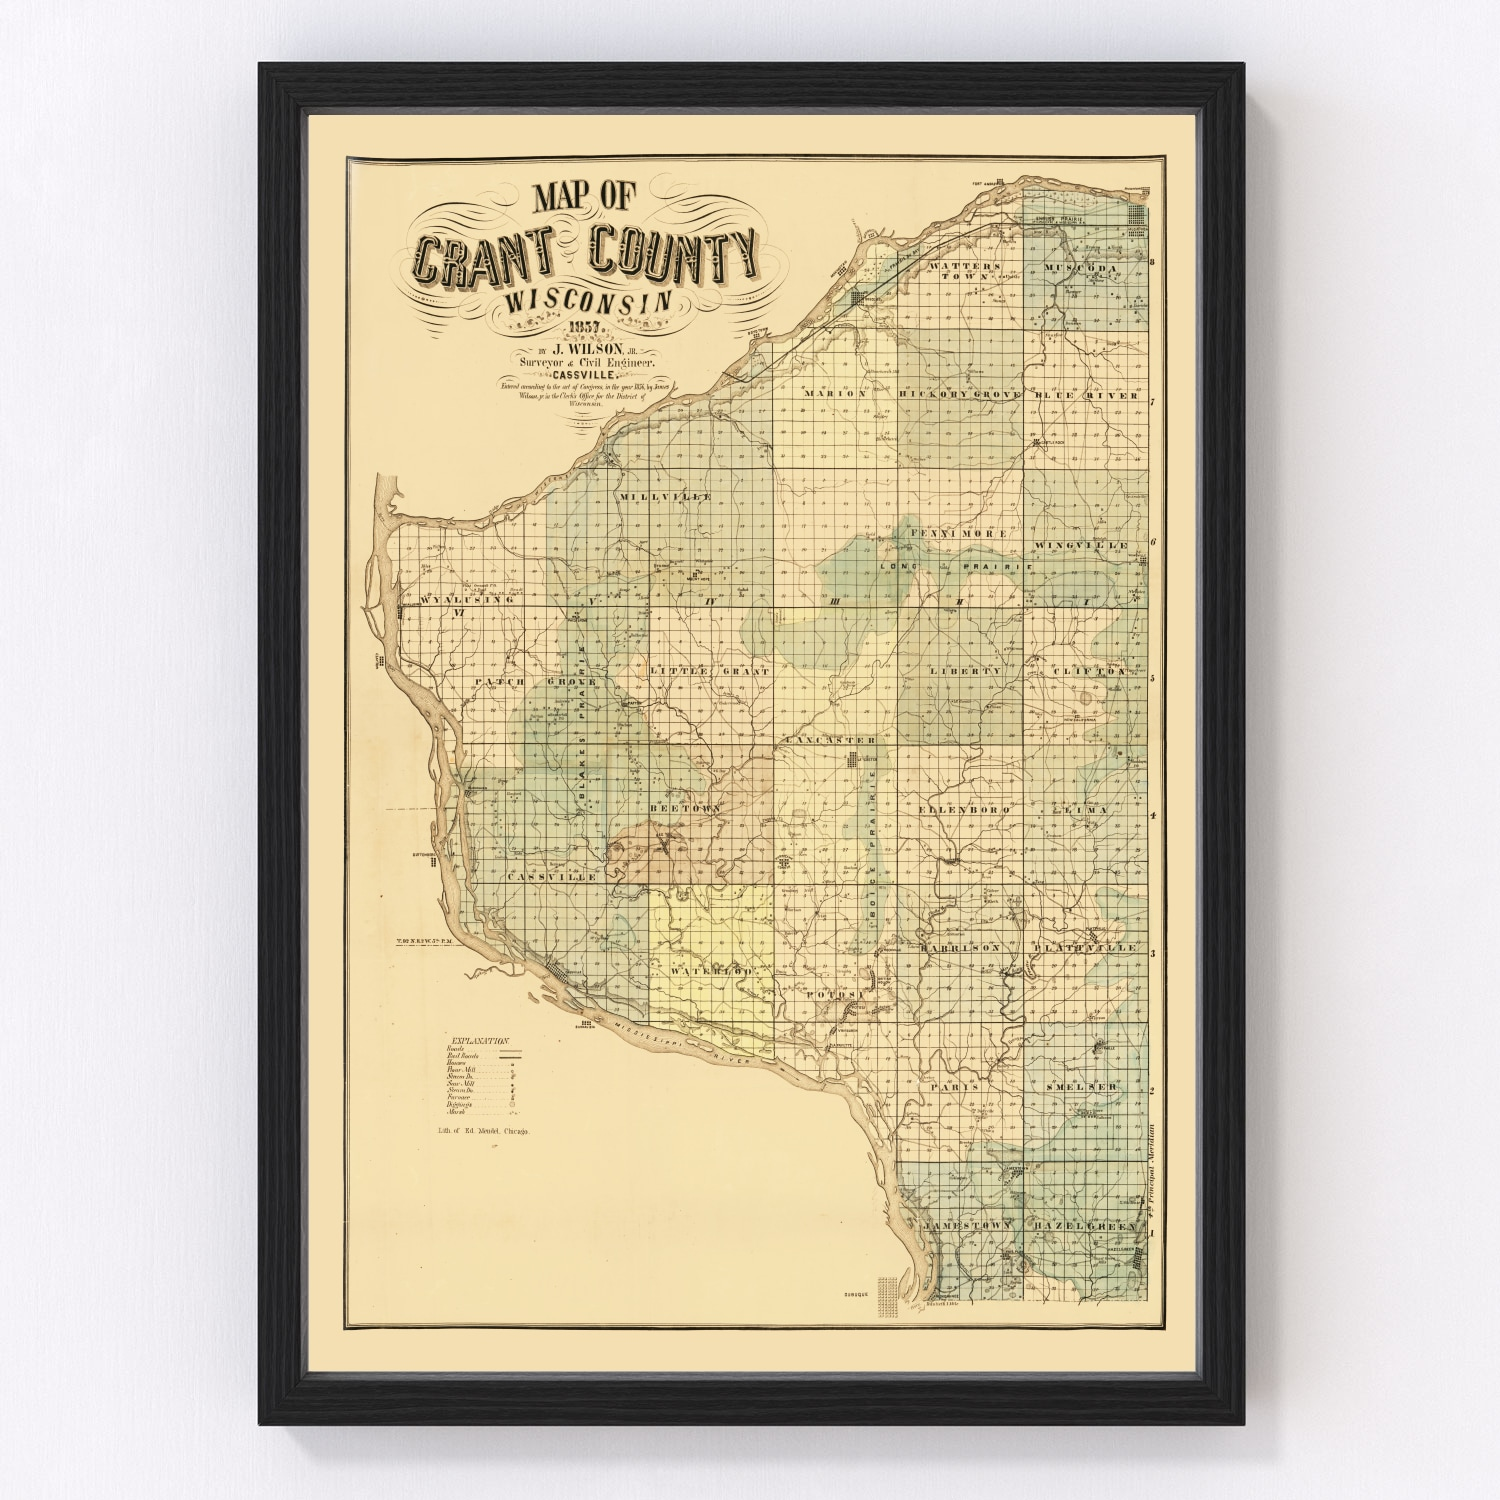 Vintage Map of Grant County, Wisconsin 1857